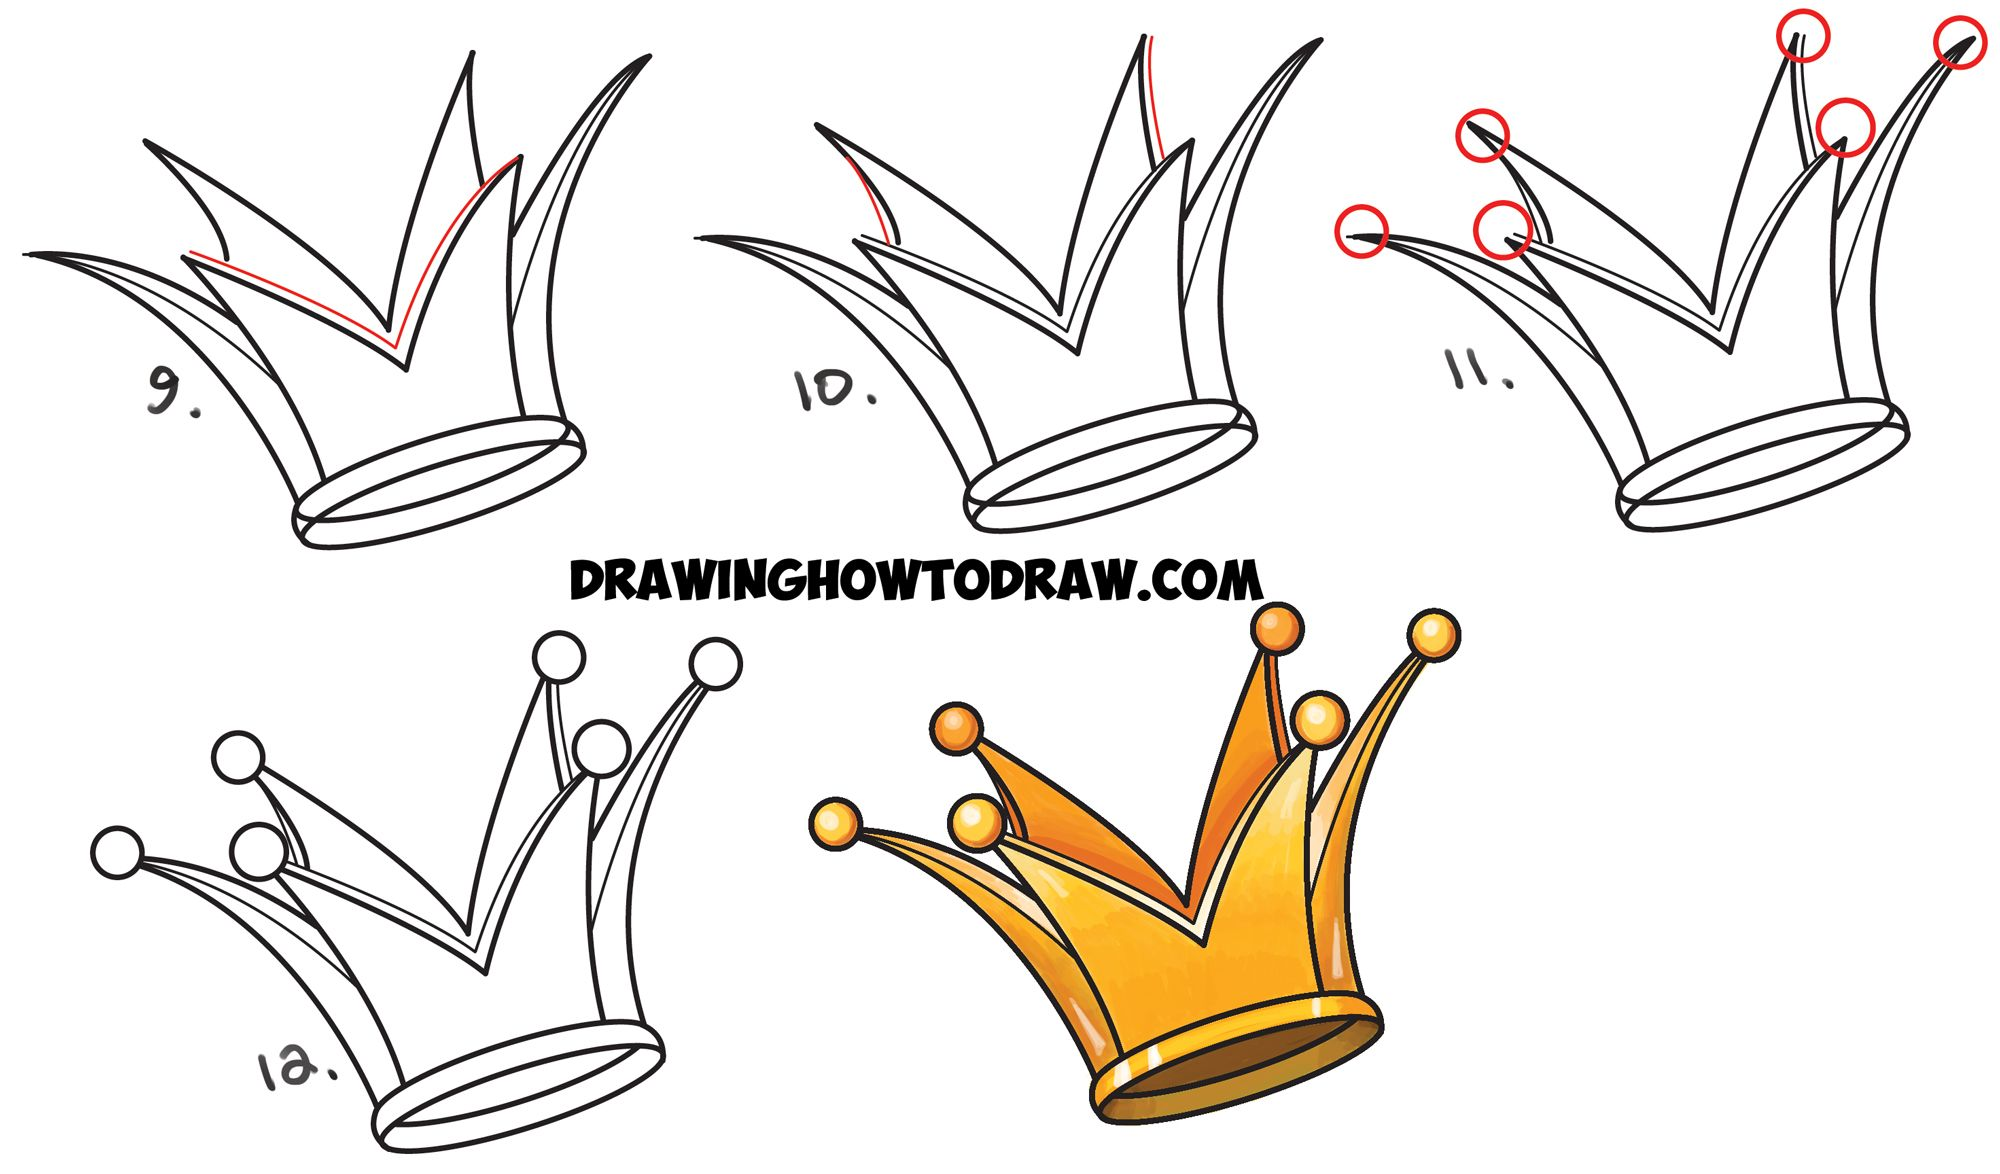 How To Draw A Crown Drawing Cartoon Crowns Easy Step By Step Drawing Tutorial For Kids How To Draw Step By Step Drawing Tutorials Crown Drawing Cartoon Drawings King Crown Drawing Download 1420 crown cliparts for free. how to draw a crown drawing cartoon